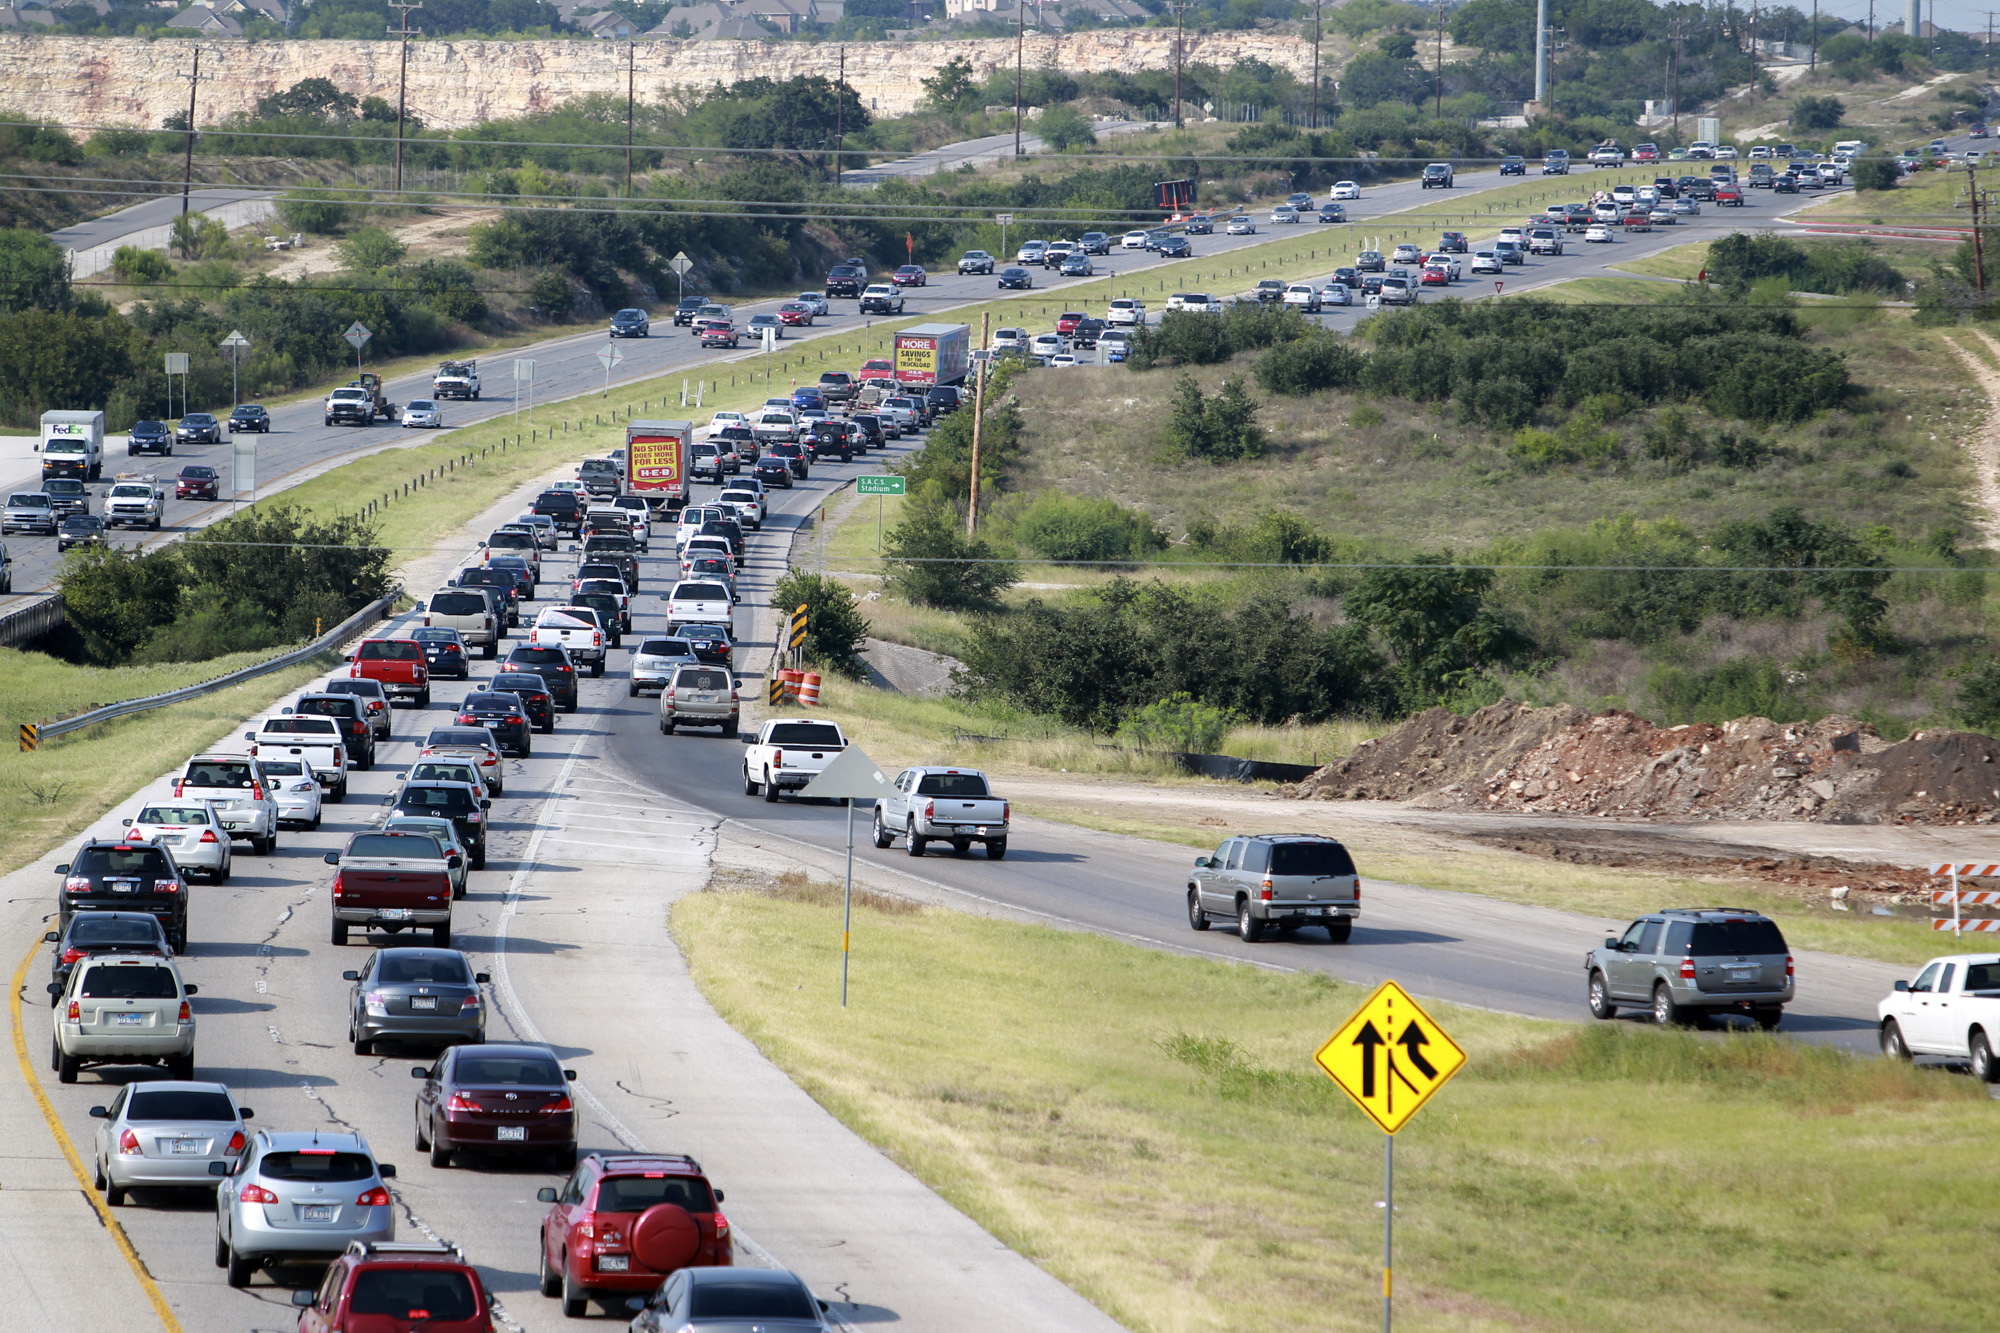 Traffic Congestion Up In San Antonio Across The Country